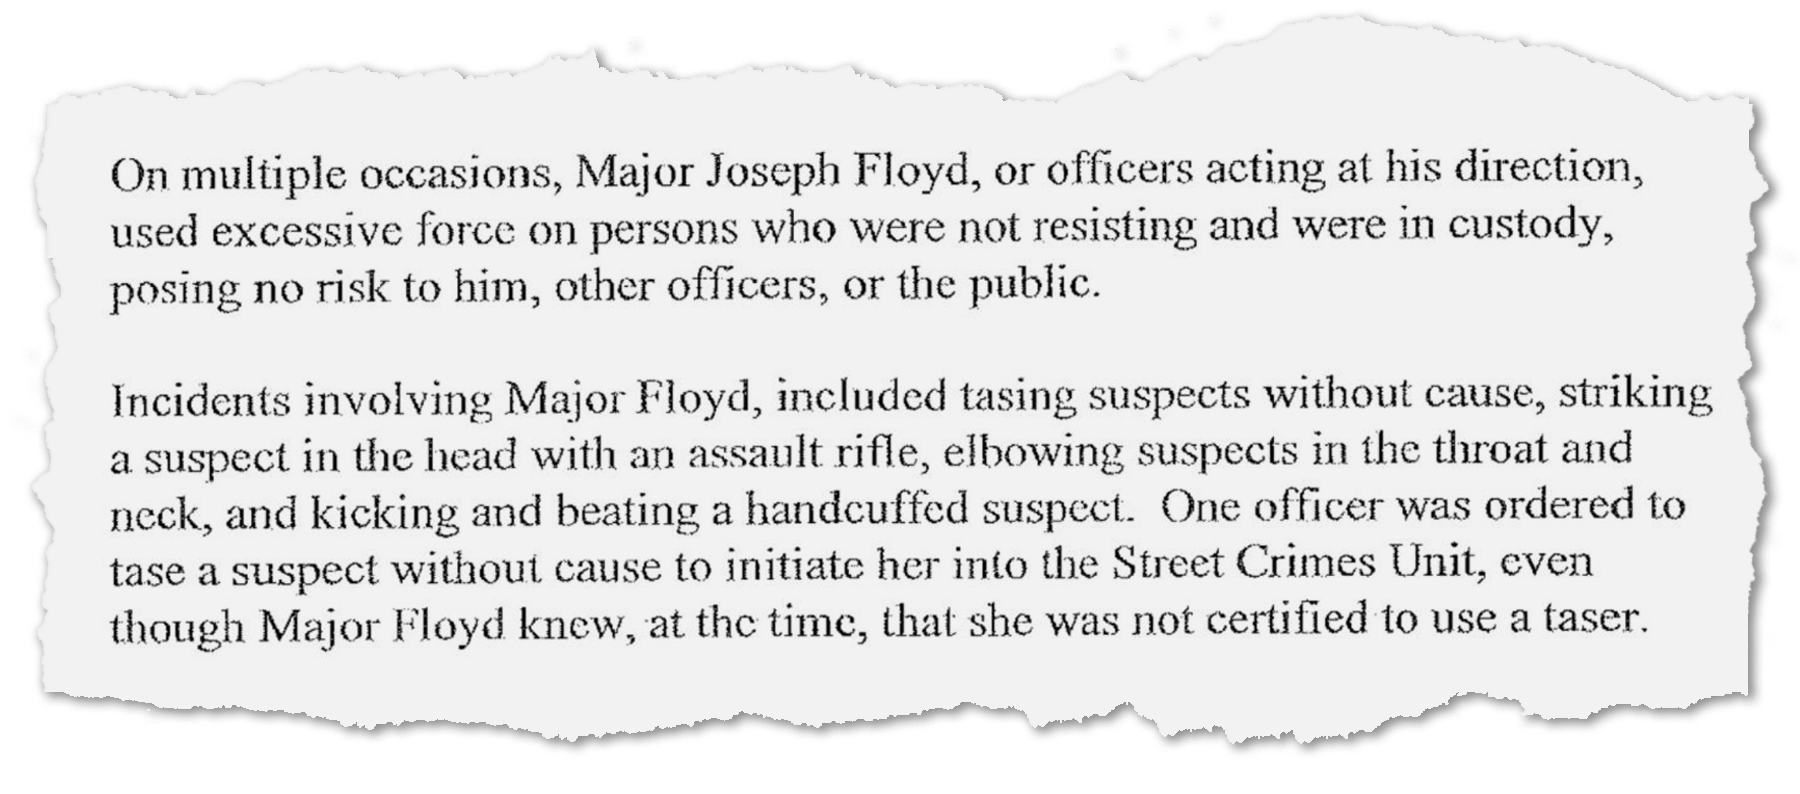 A grand jury presentment laid out the evidence it used to indict former Crestview police officer Joseph Floyd for racketeering in 2012. Among the accusations were excessive use of force, false arrests, sexual assault, bribery, planting drugs, falsifying police reports and intimidating other officers to force them to go along with his crimes.